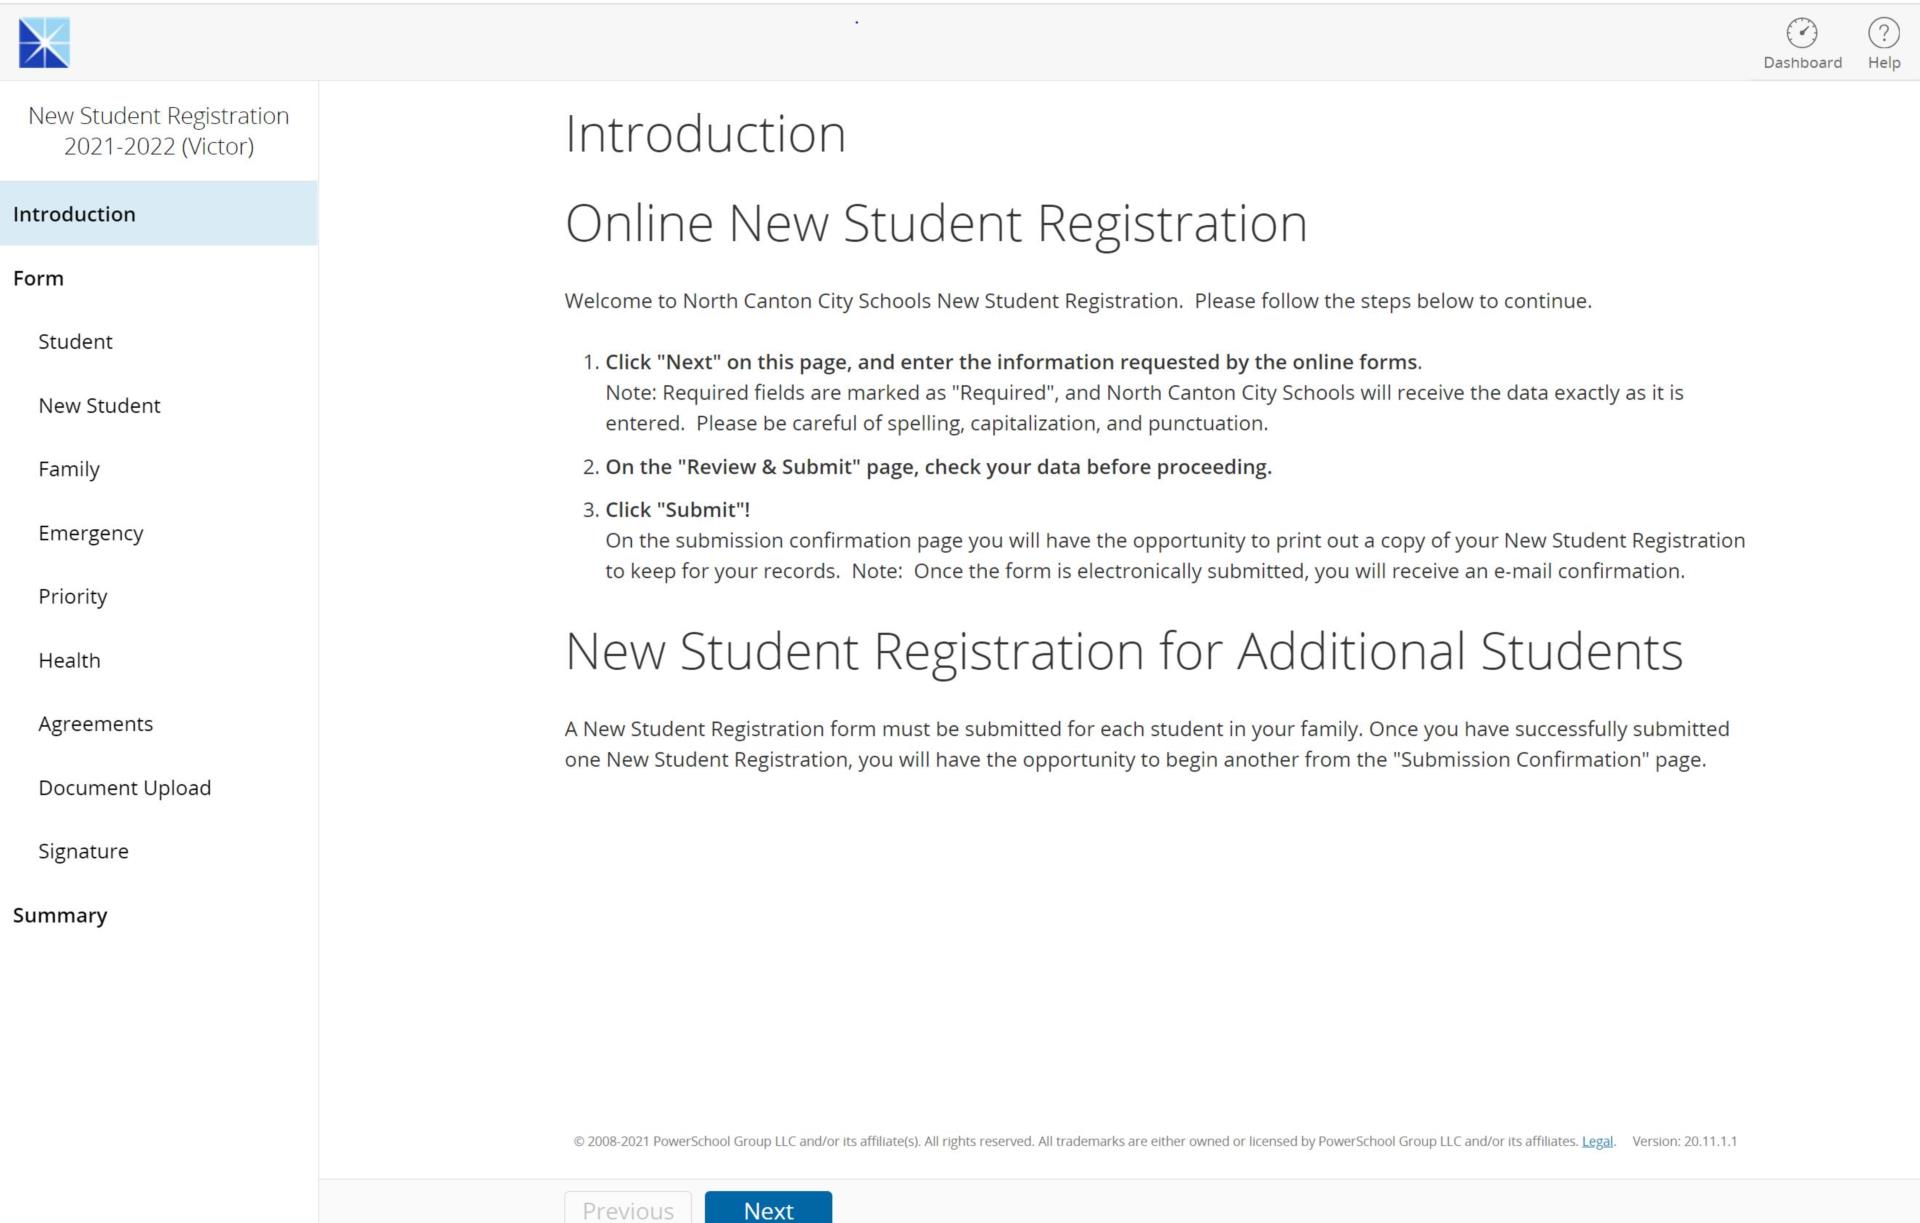 Introduction to new student registration information